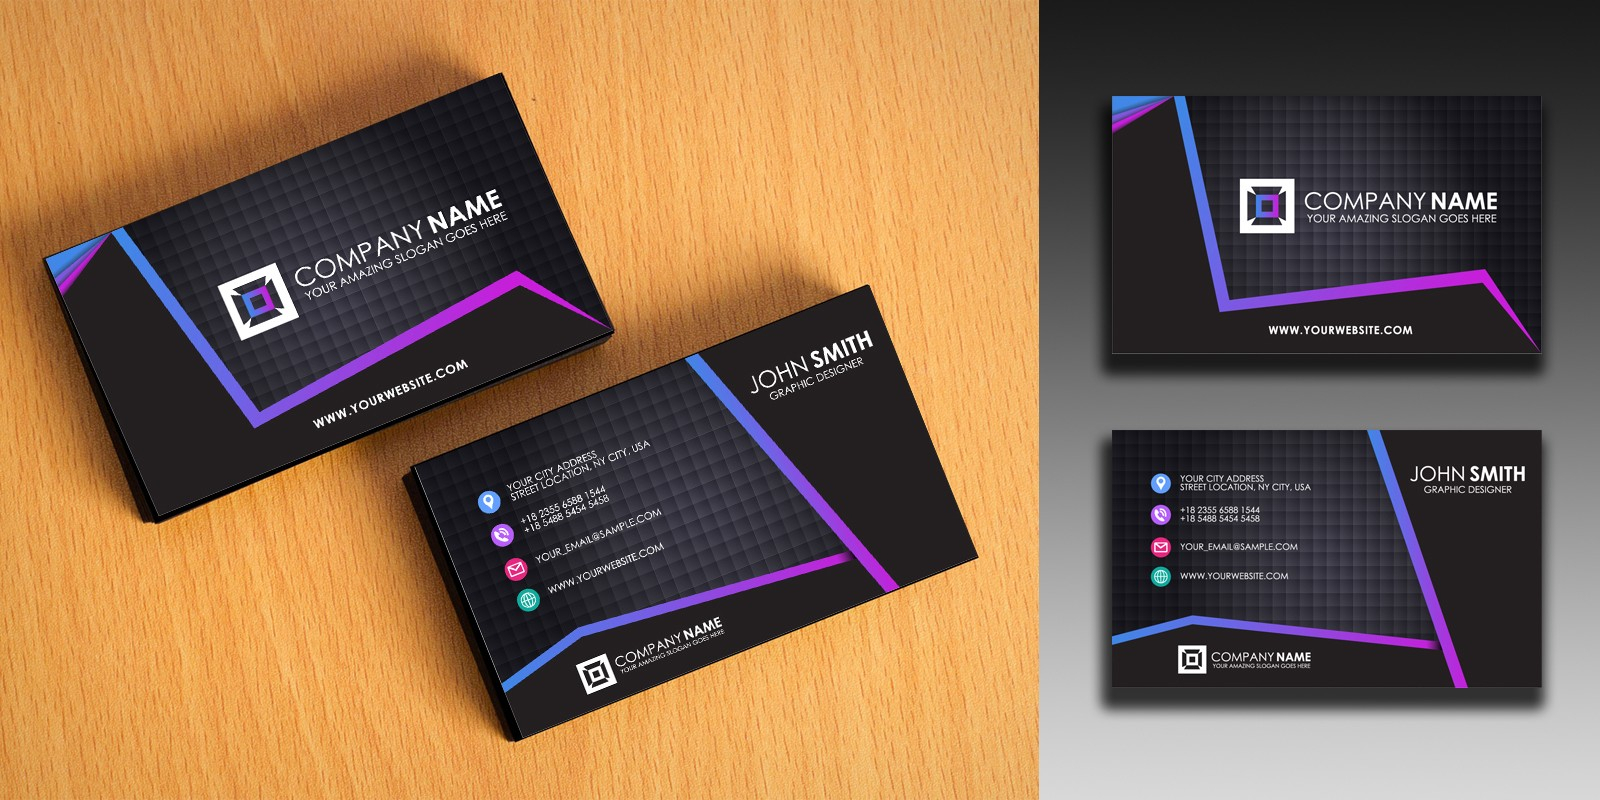 Clean And Simple Business Card Template With Regard To Buisness Card Templates